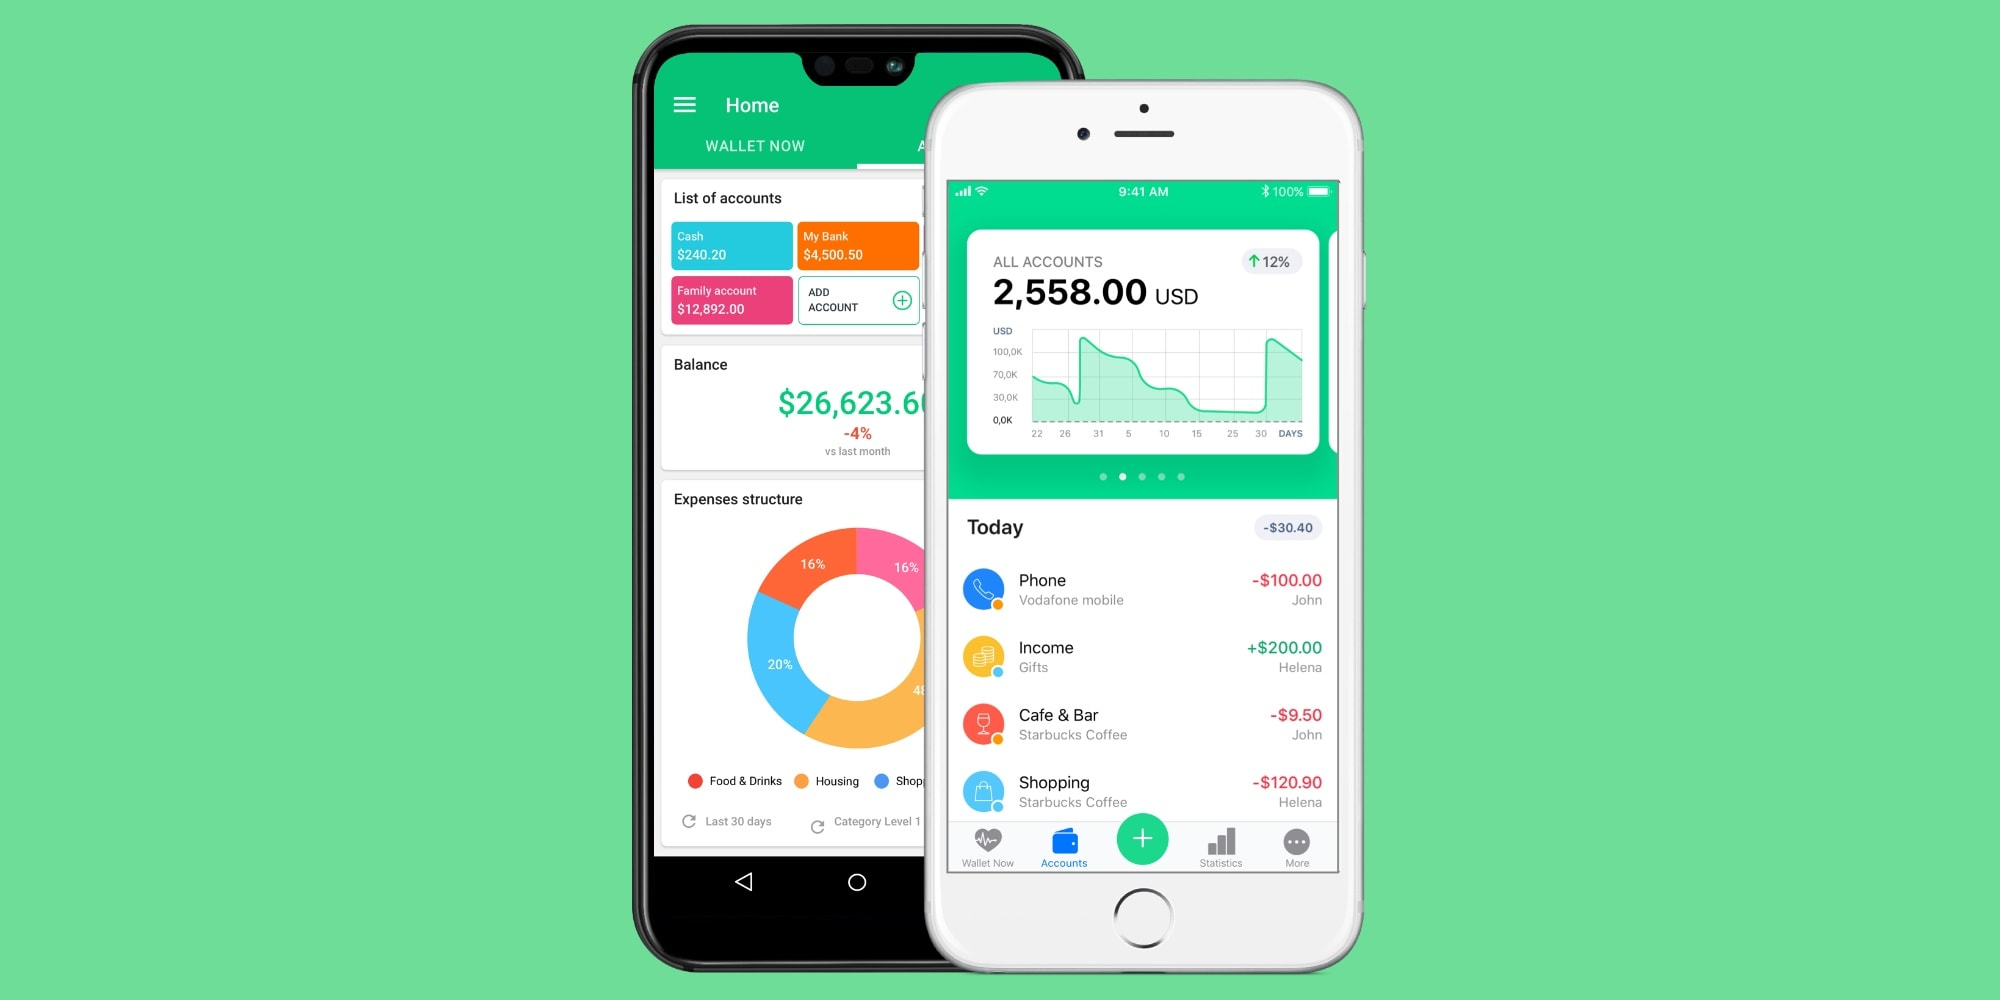 This app offers flexibility in planning your budget, managing your accounts and tracking your expenses.